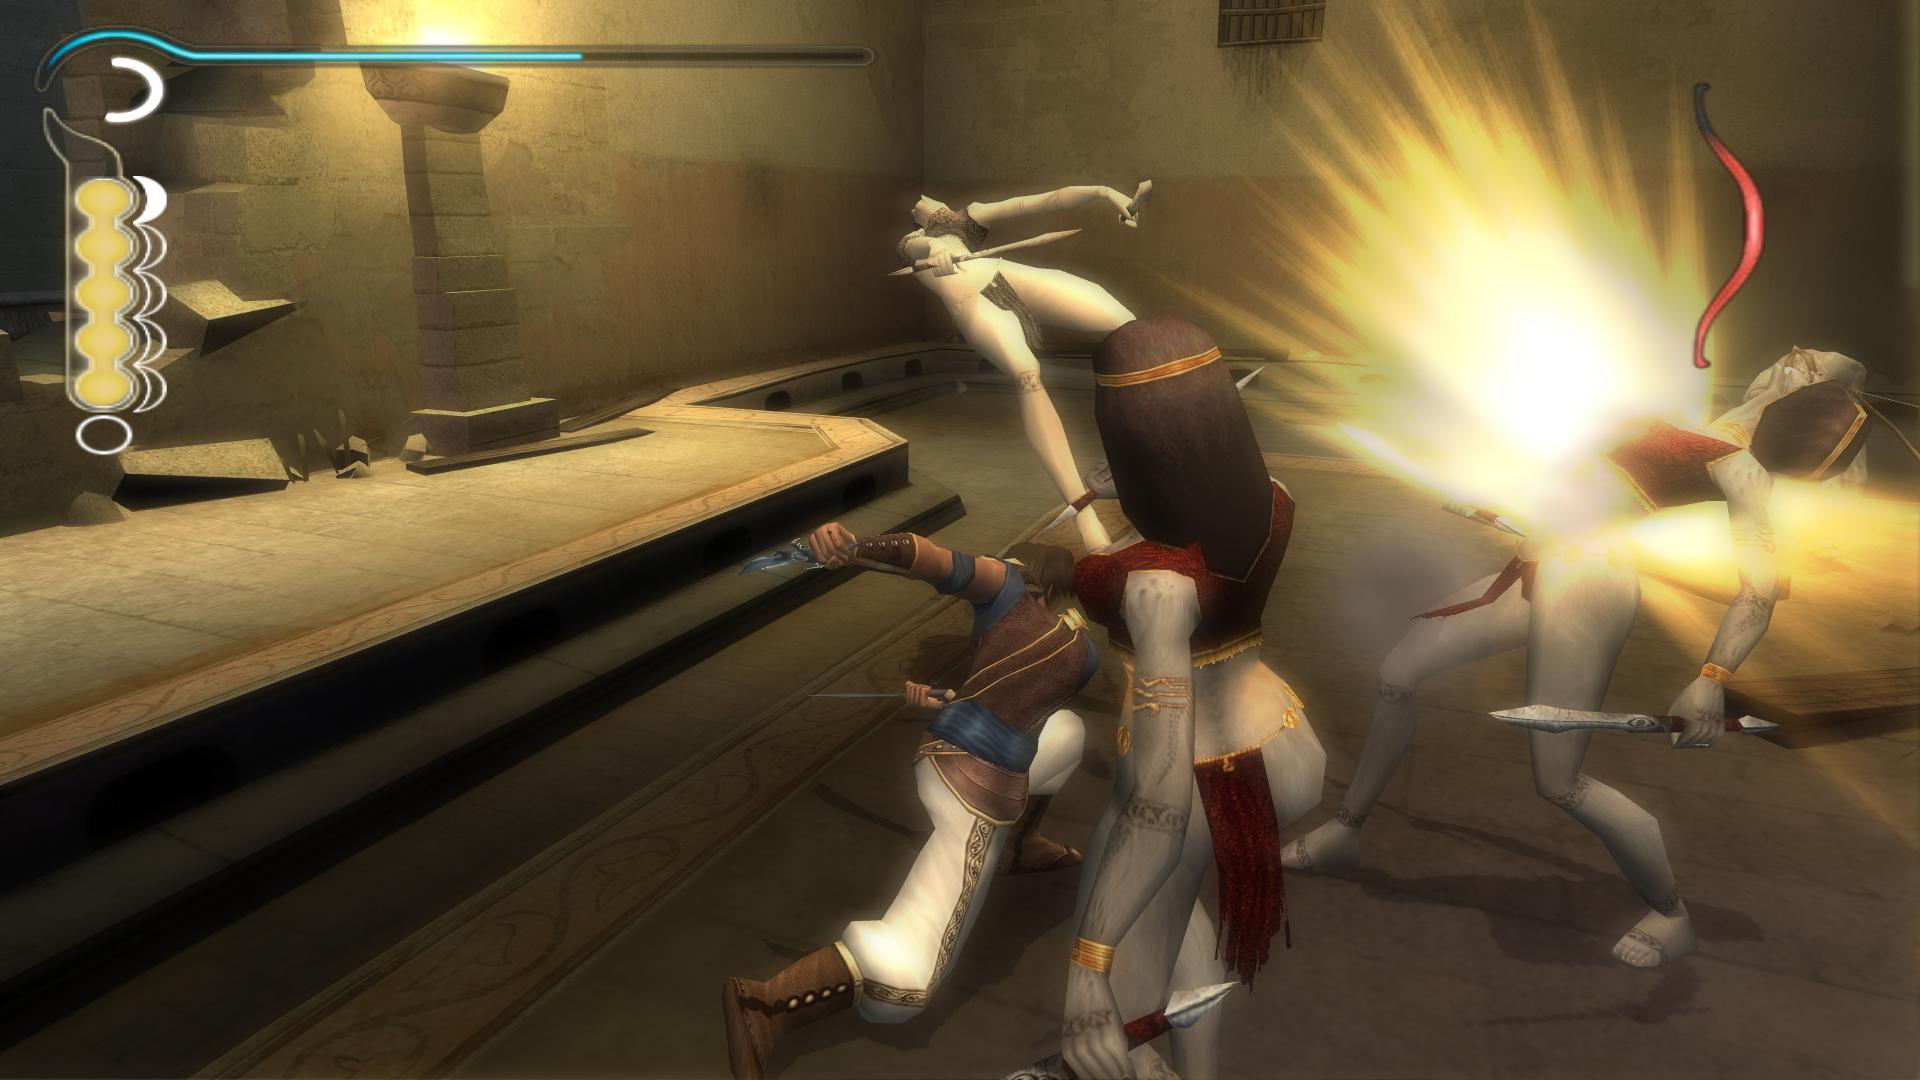 Porn images of game prince of persia nackt streaming